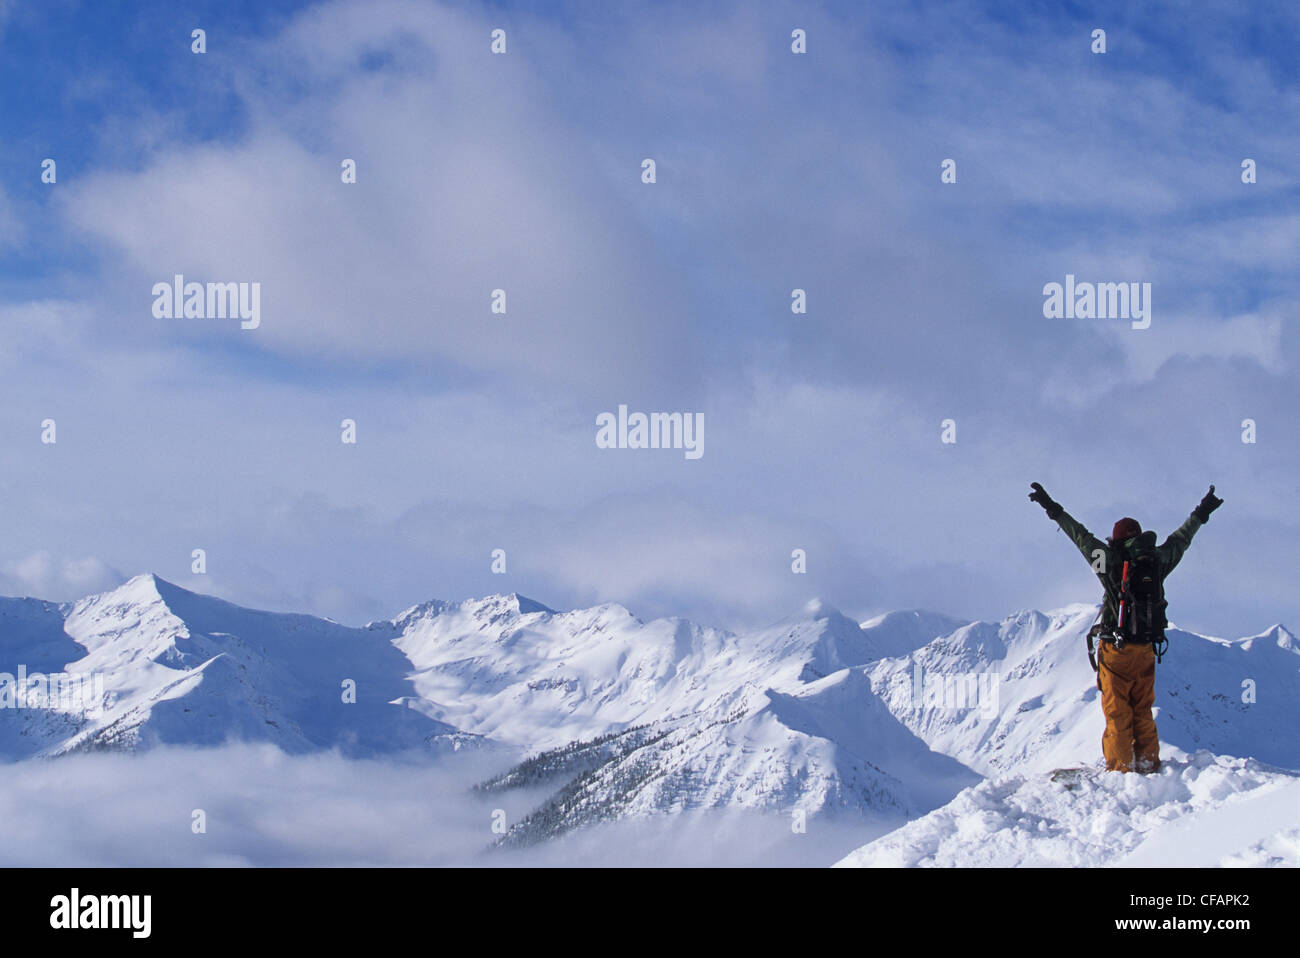 A skier enjoying the view of the snowy mountain peaks in the backcountry, Purcell Range, Golden, British Columbia, - Stock Image